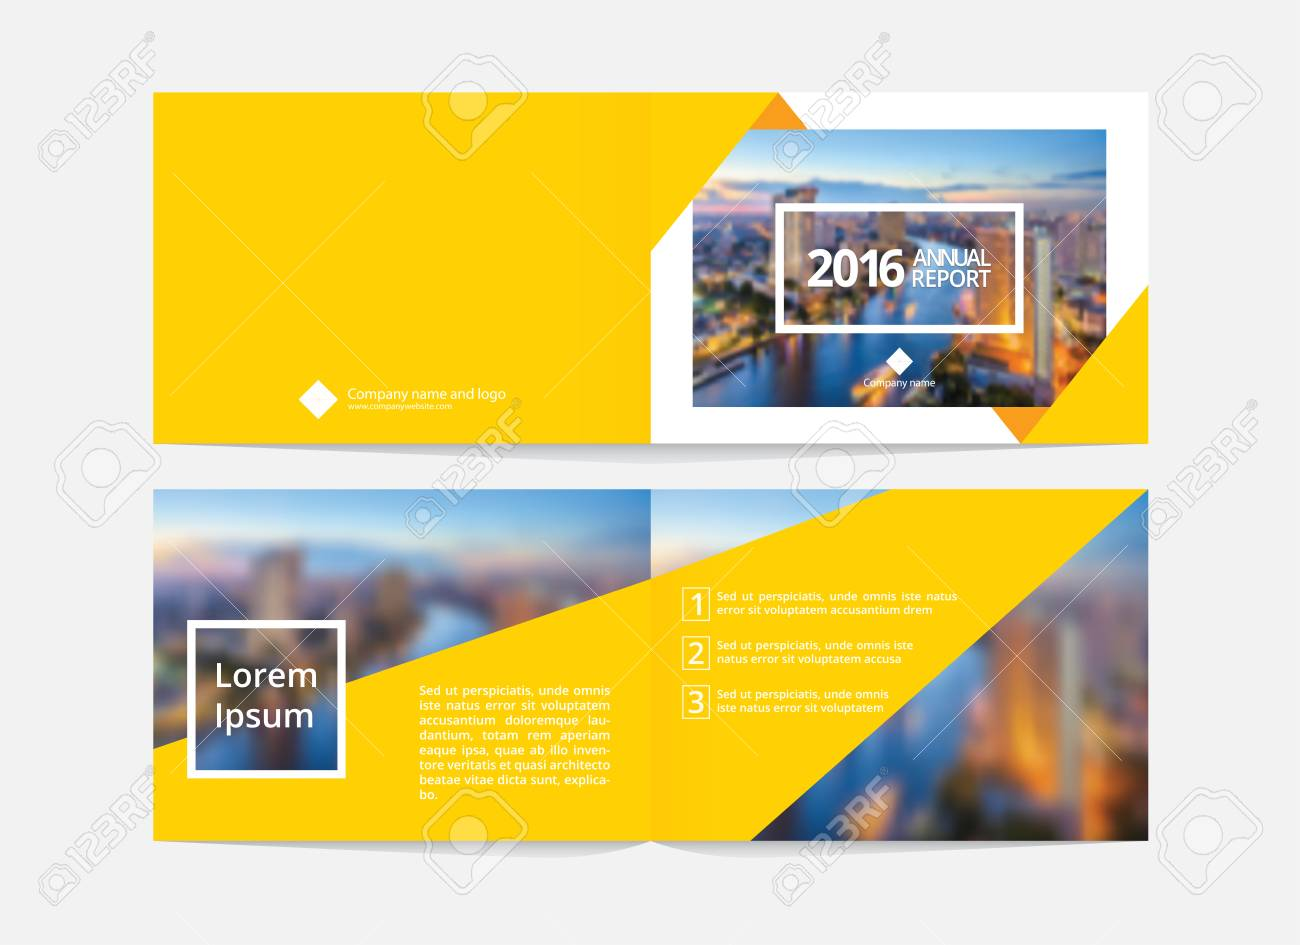 Cover Design And Inner Layout Template For Annual Report Or Catalog